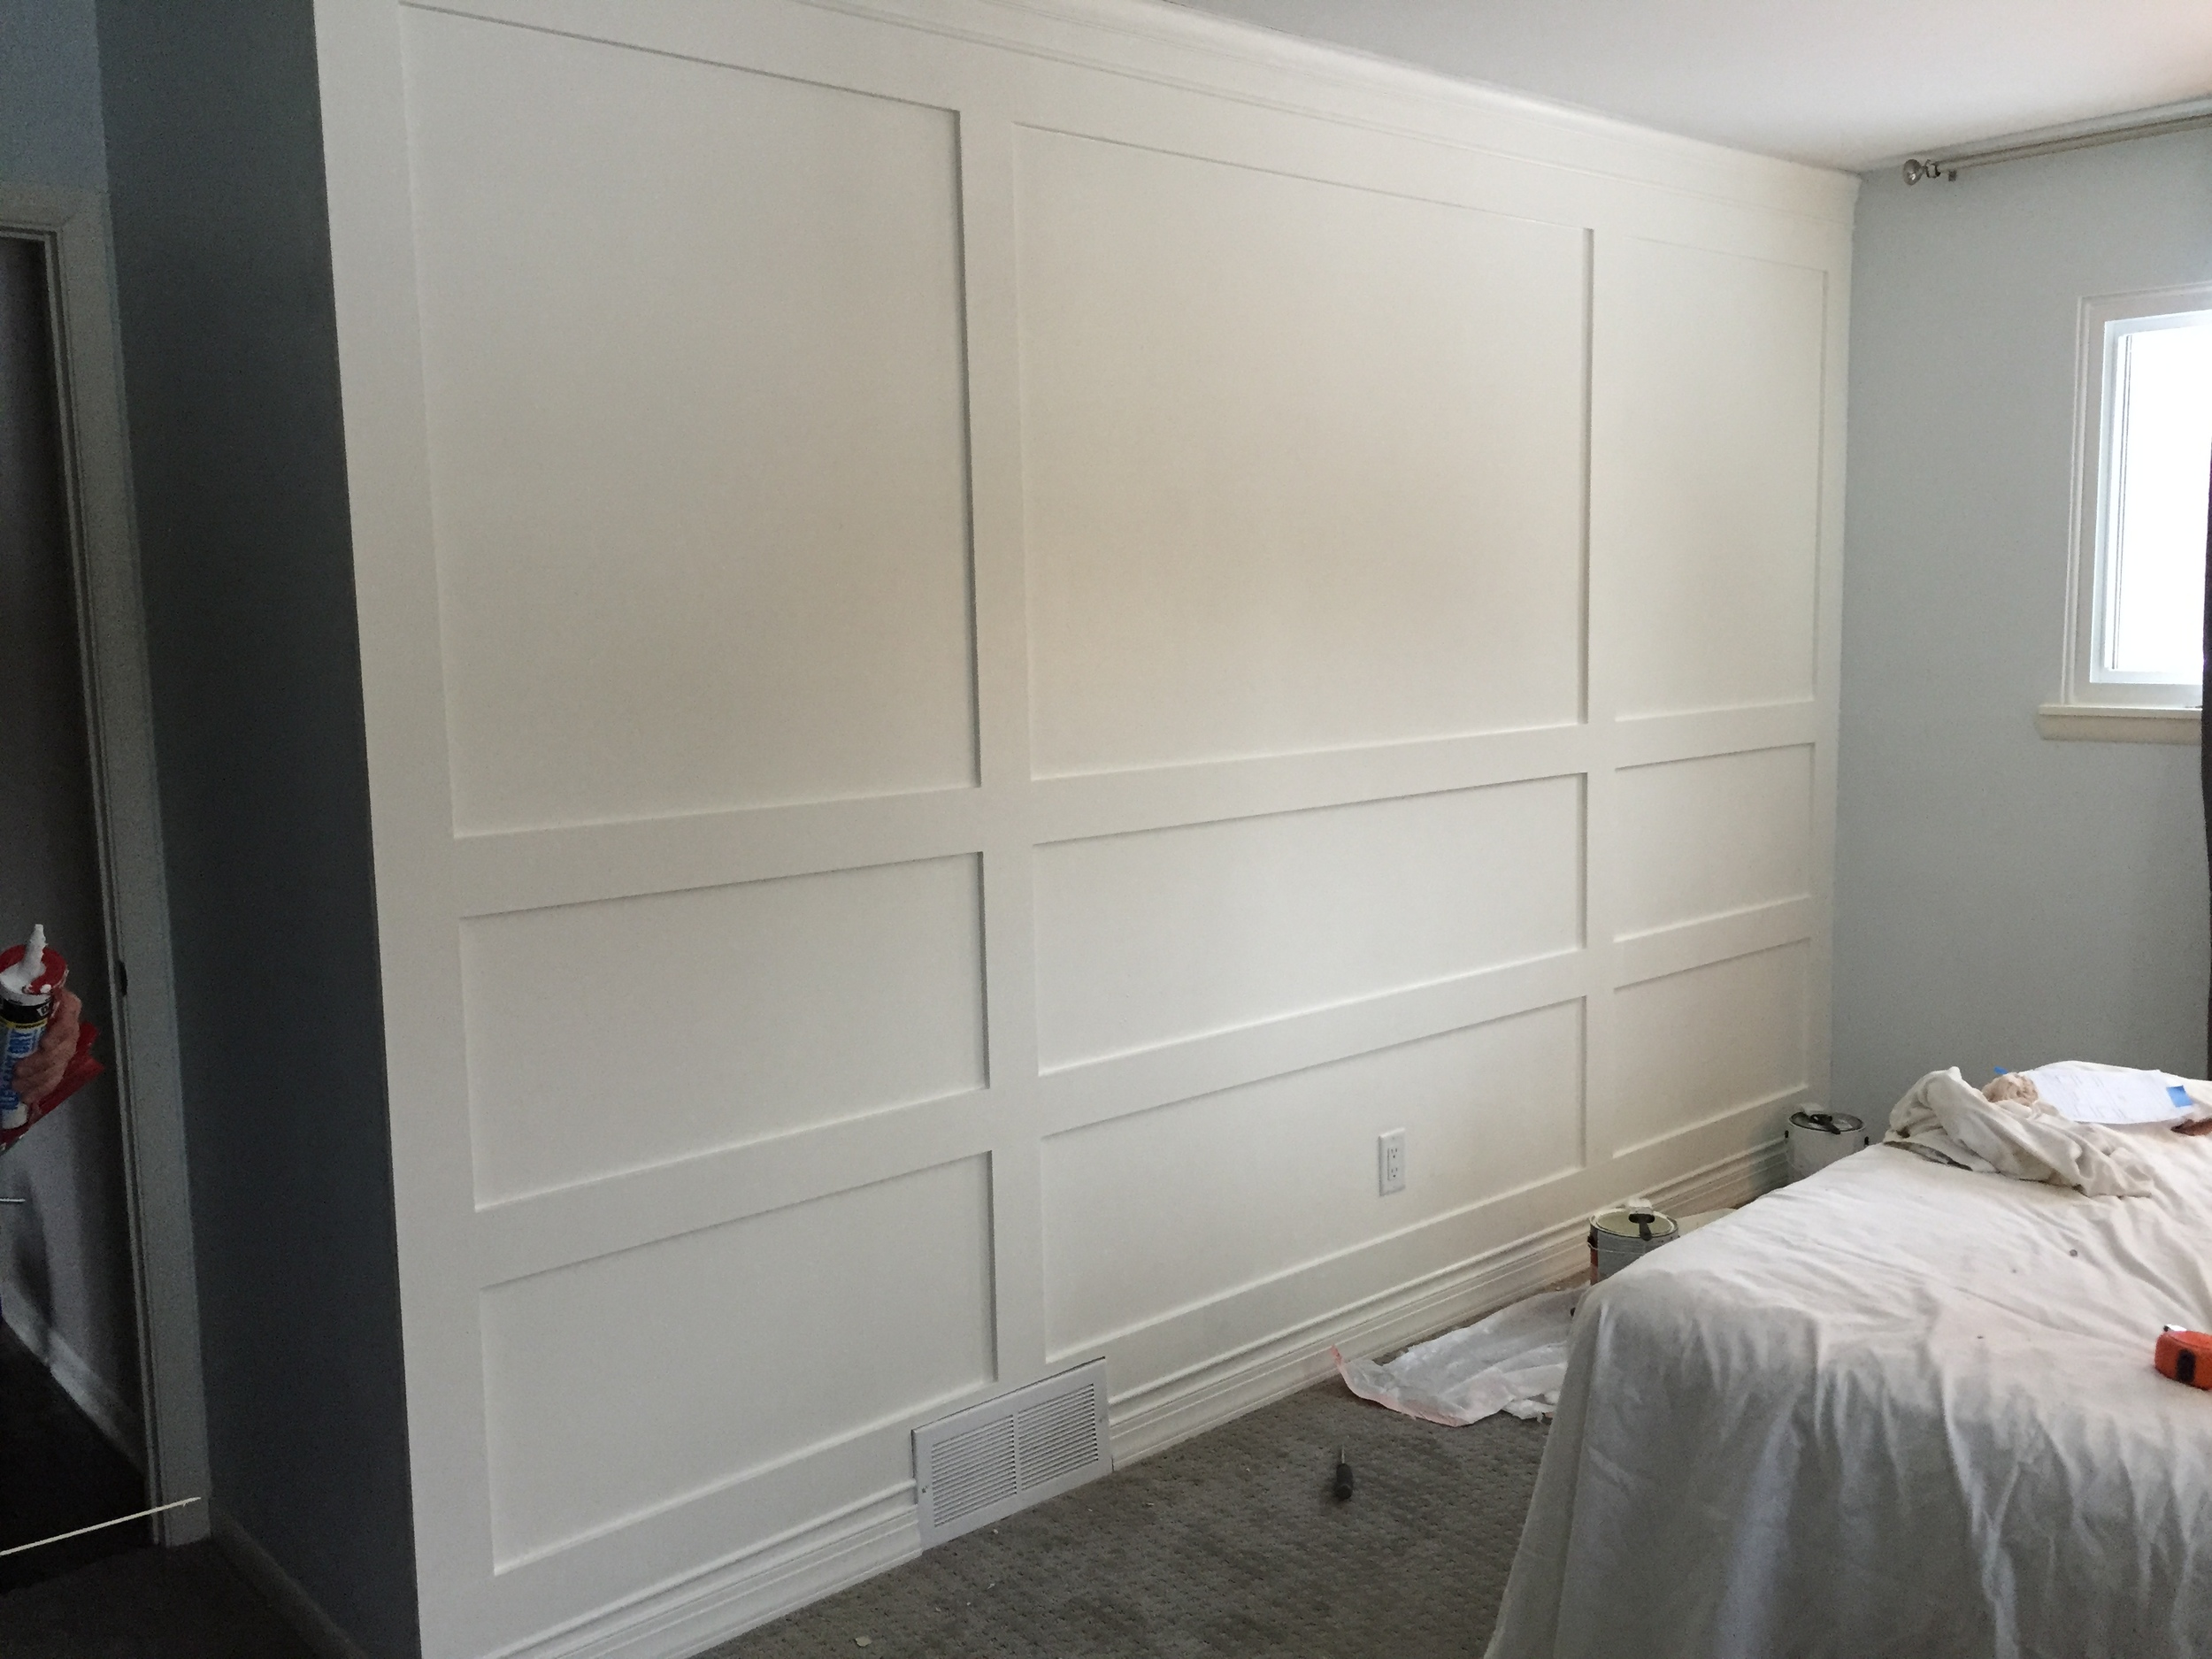 Building A Wood Paneled Wall You Can Do It Too